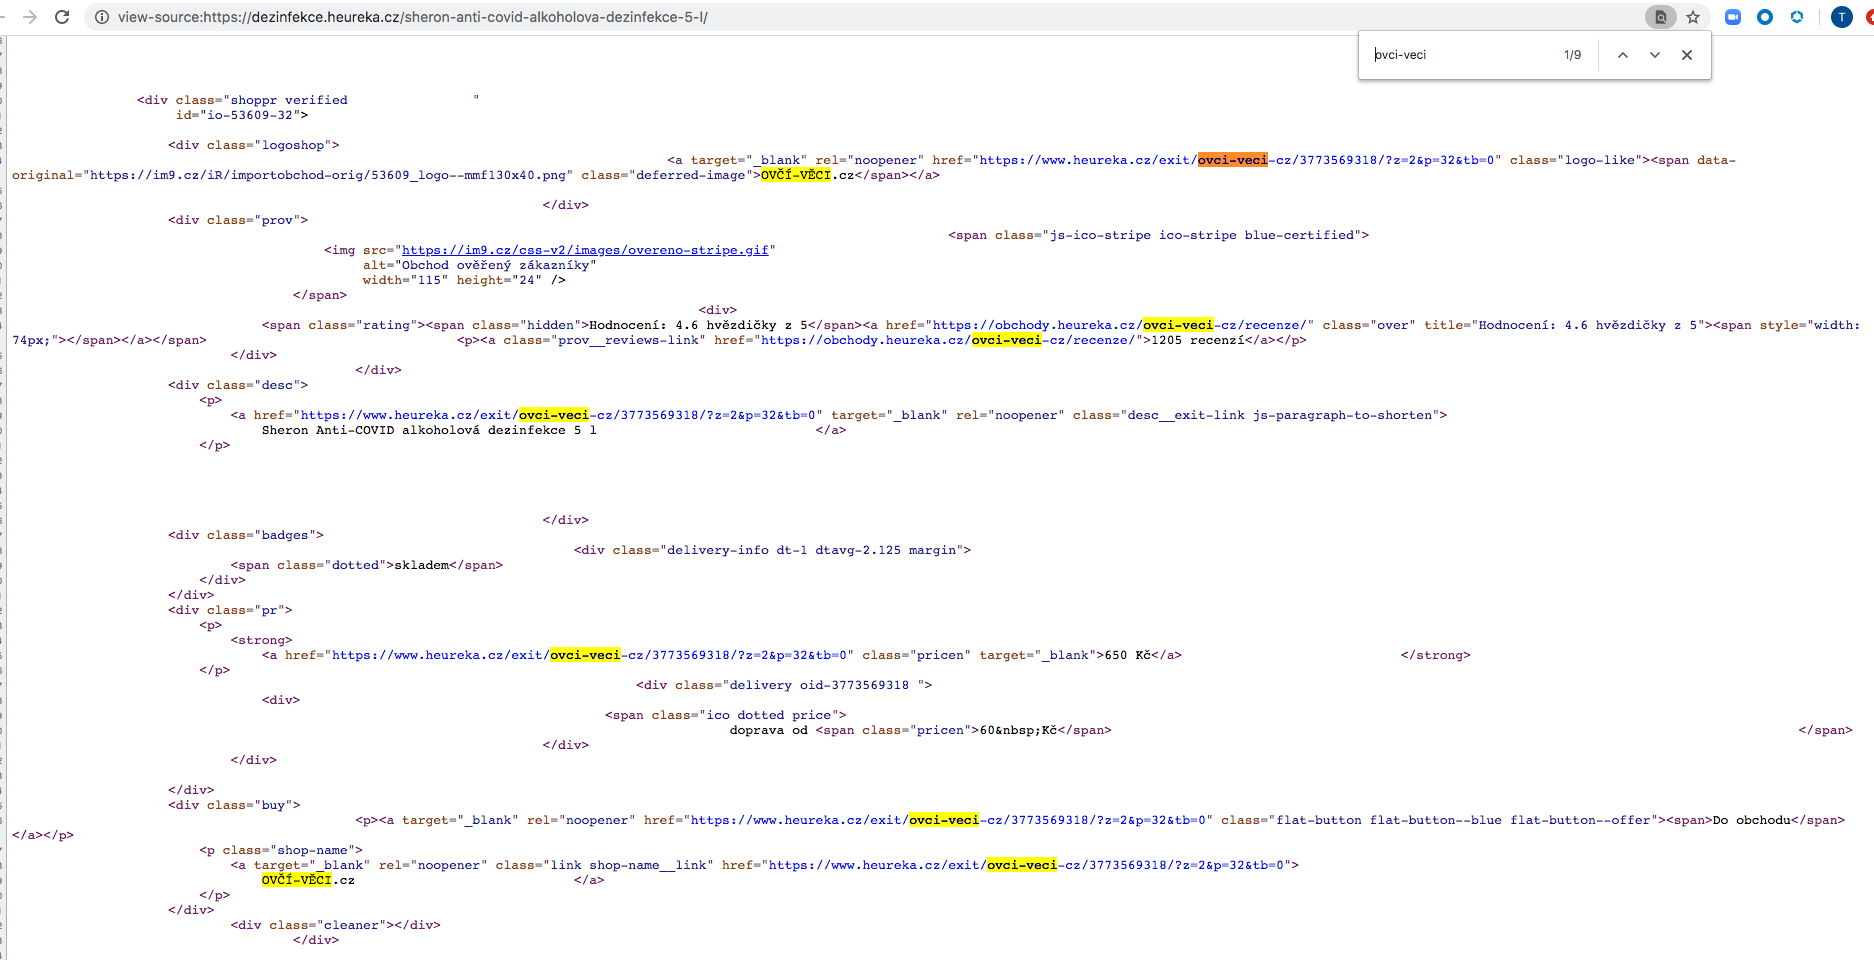 Source code of the page on heureka[.]cz containing malicious links, which are highlighted.